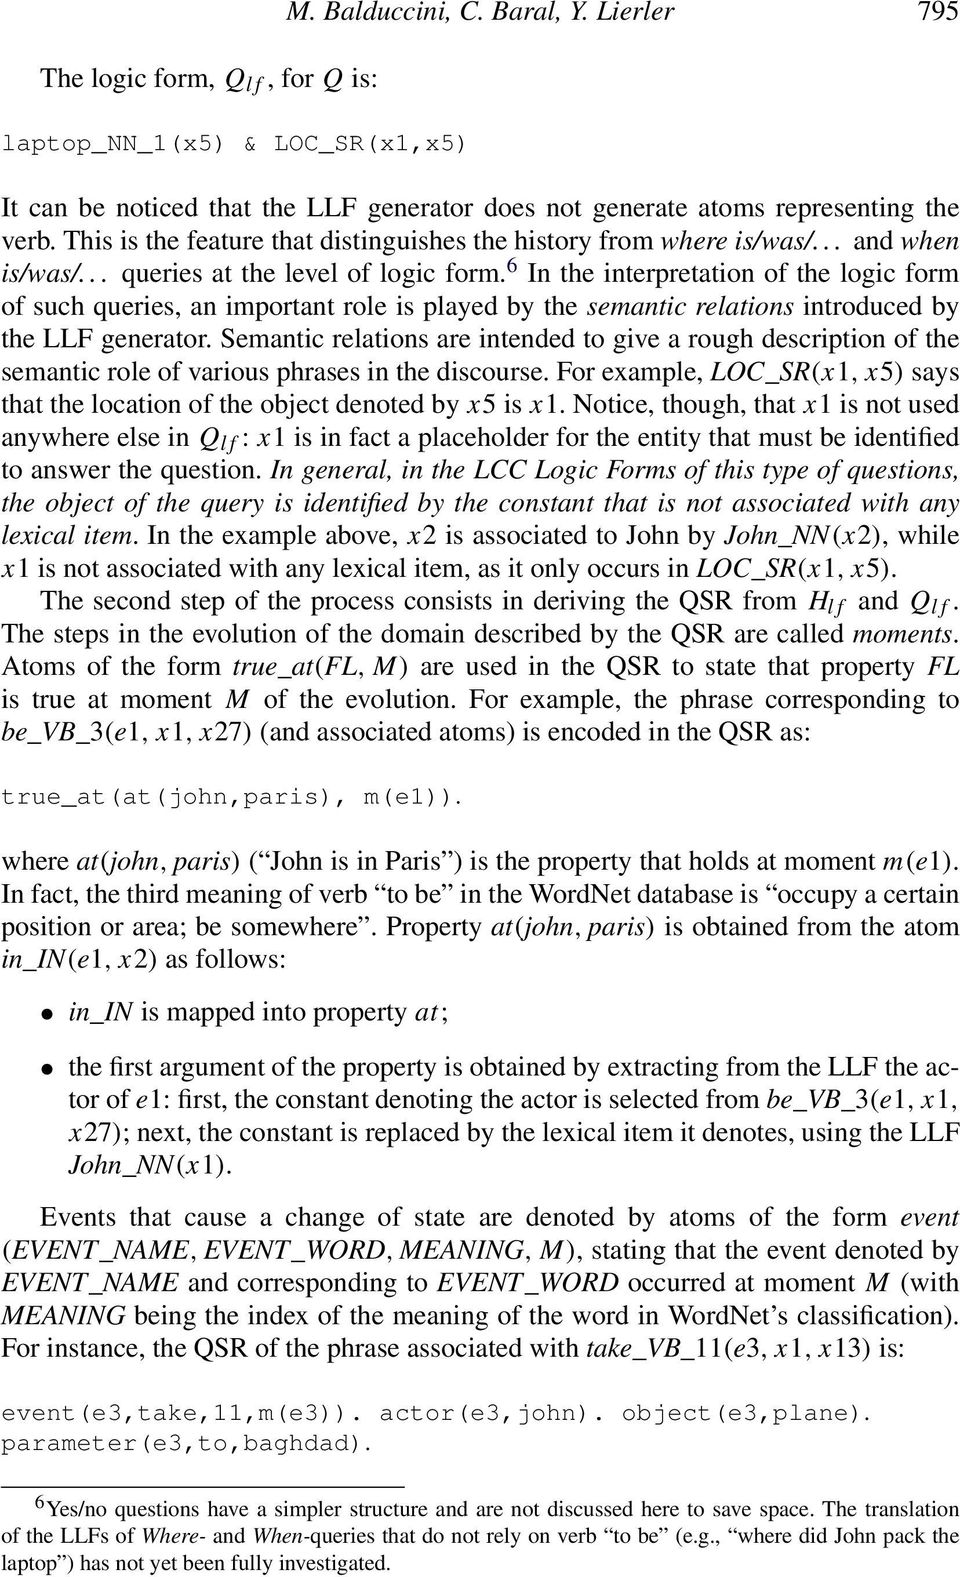 6 In the interpretation of the logic form of such queries, an important role is played by the semantic relations introduced by the LLF generator.